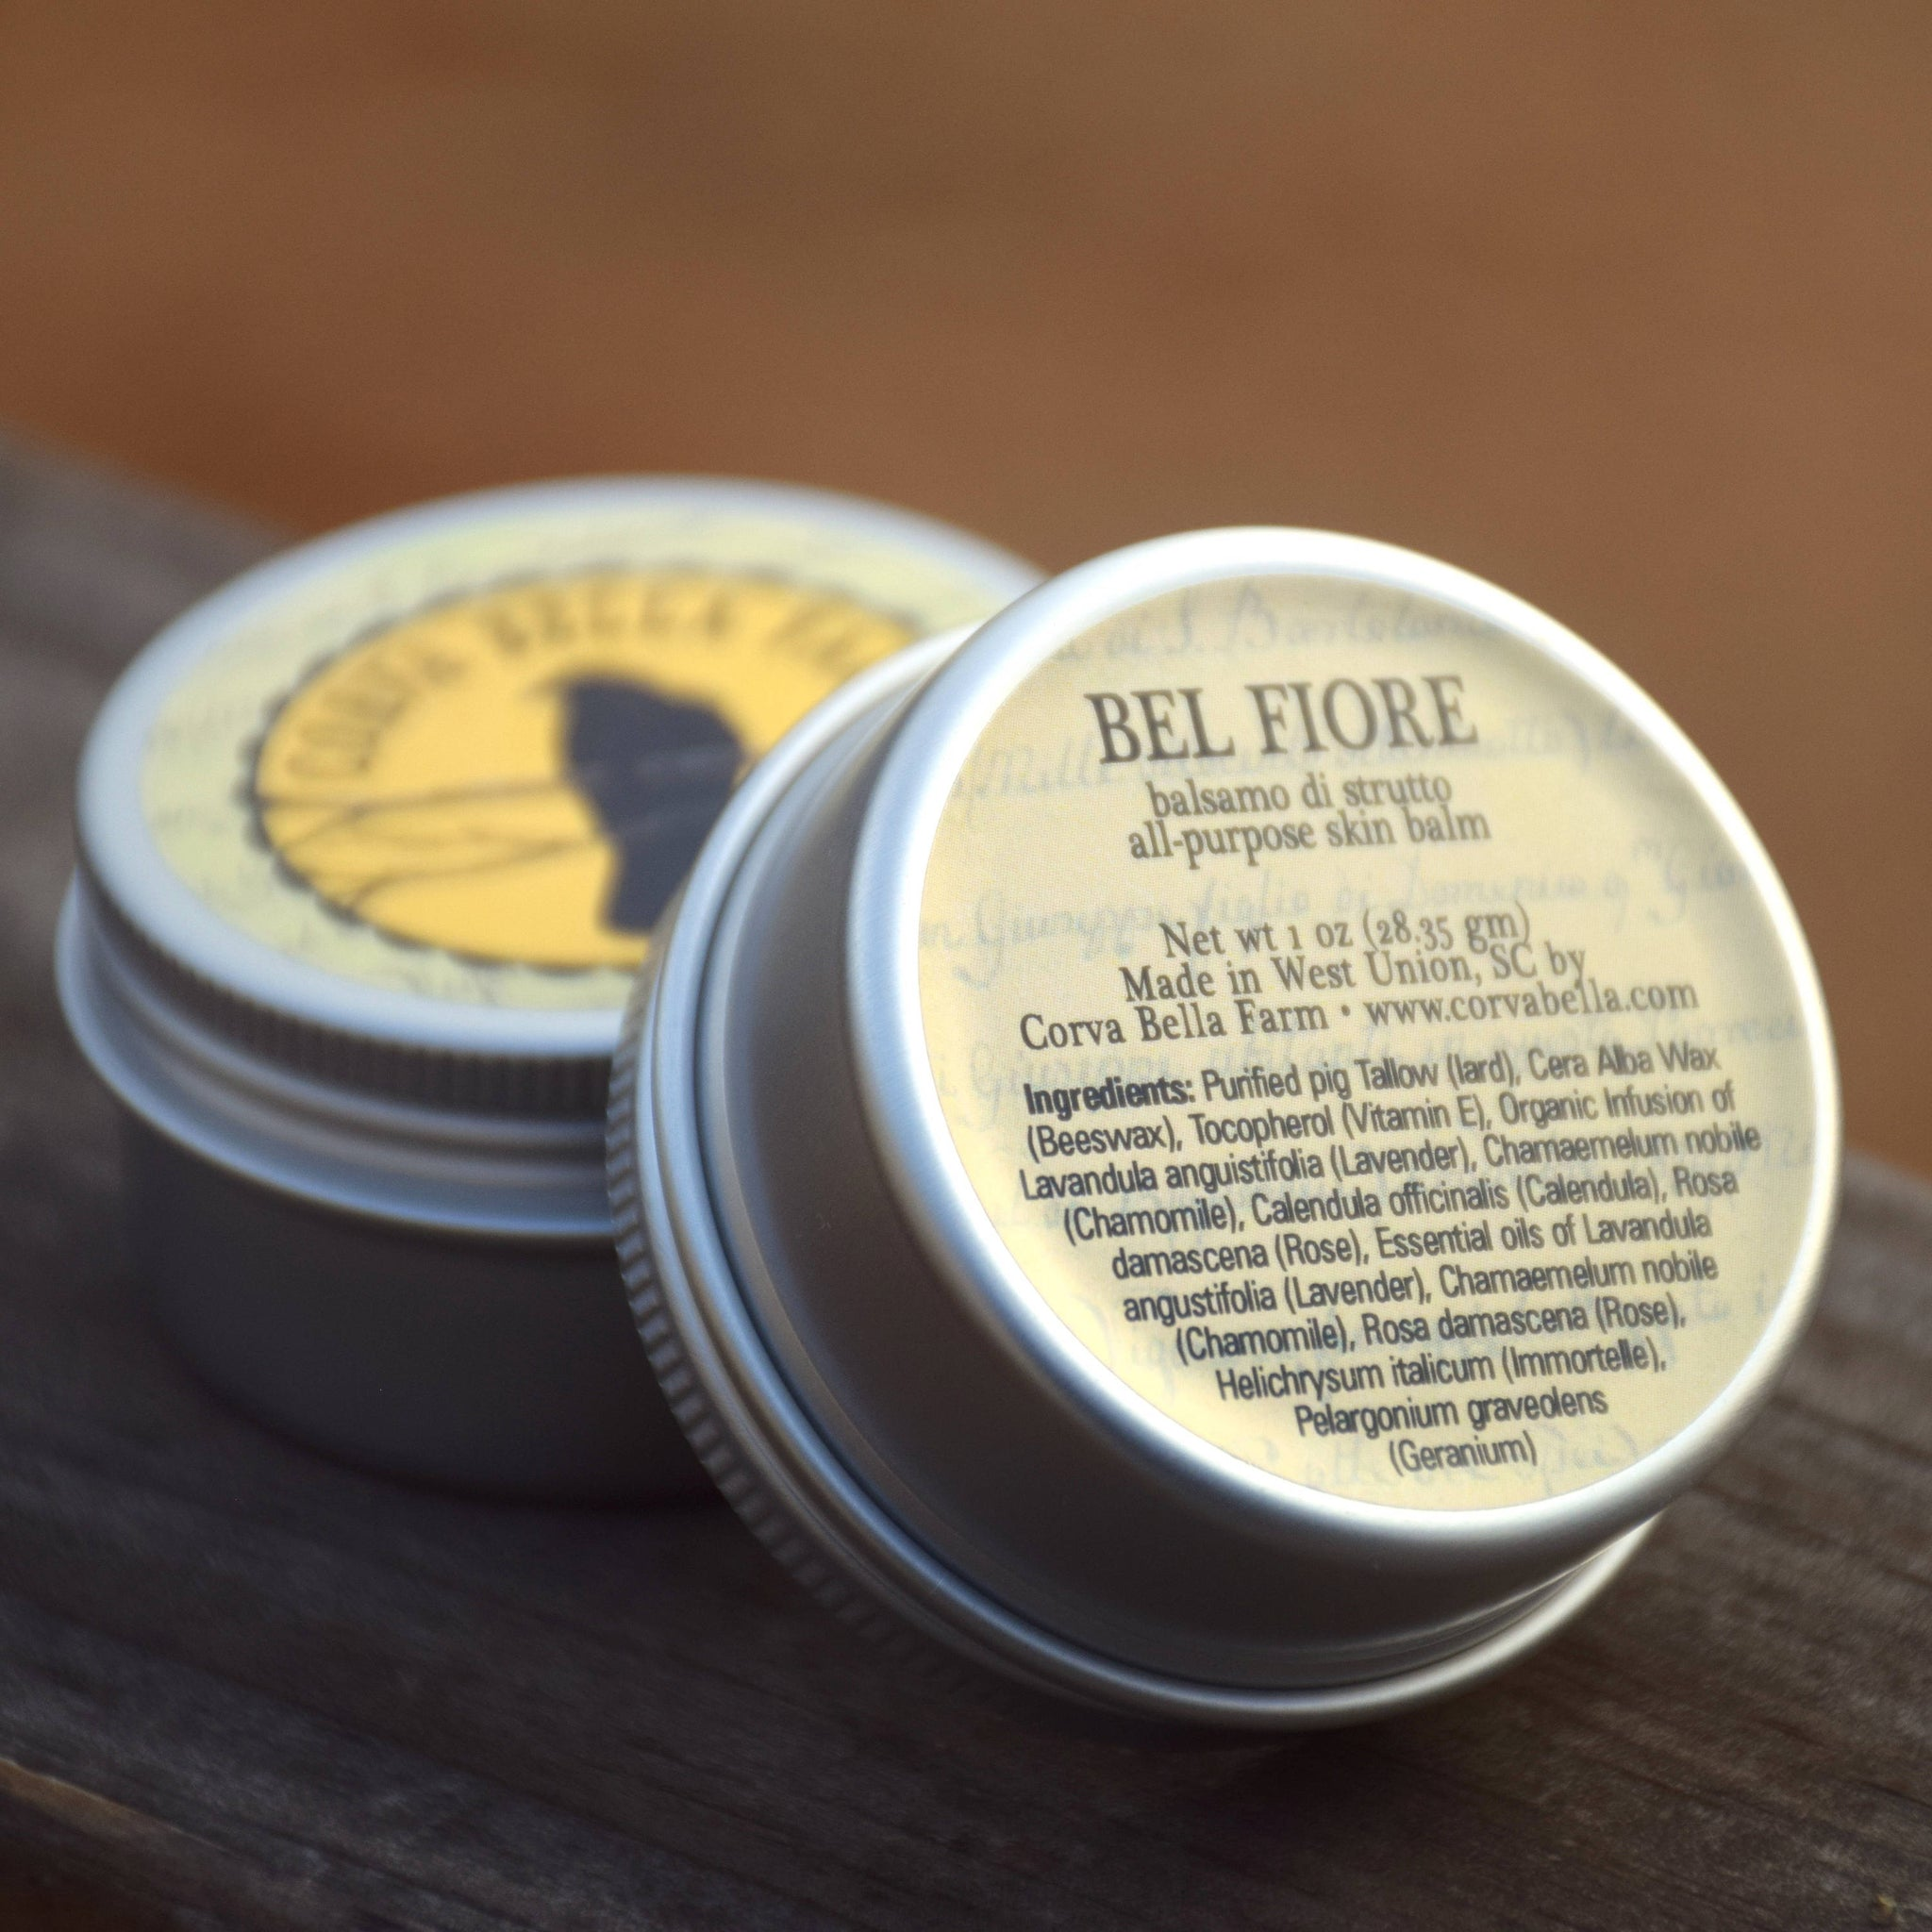 Bel Fiore (One oz. size) All-purpose pig tallow skin balm